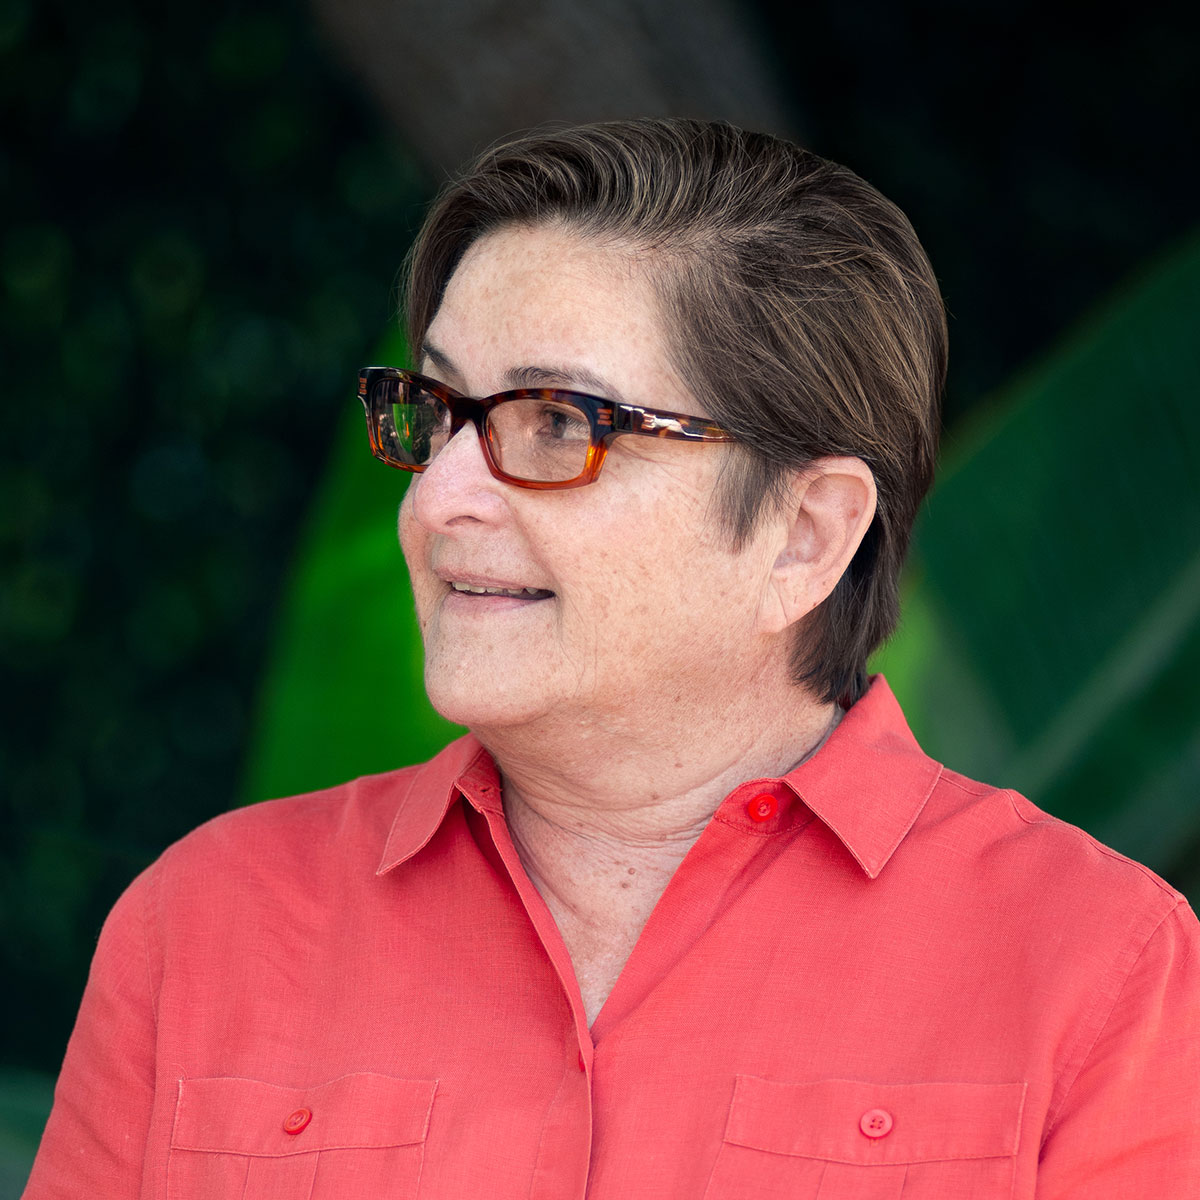 Sharon Kramer is the controller of Los Angeles architecture firm Tim Barber Ltd.